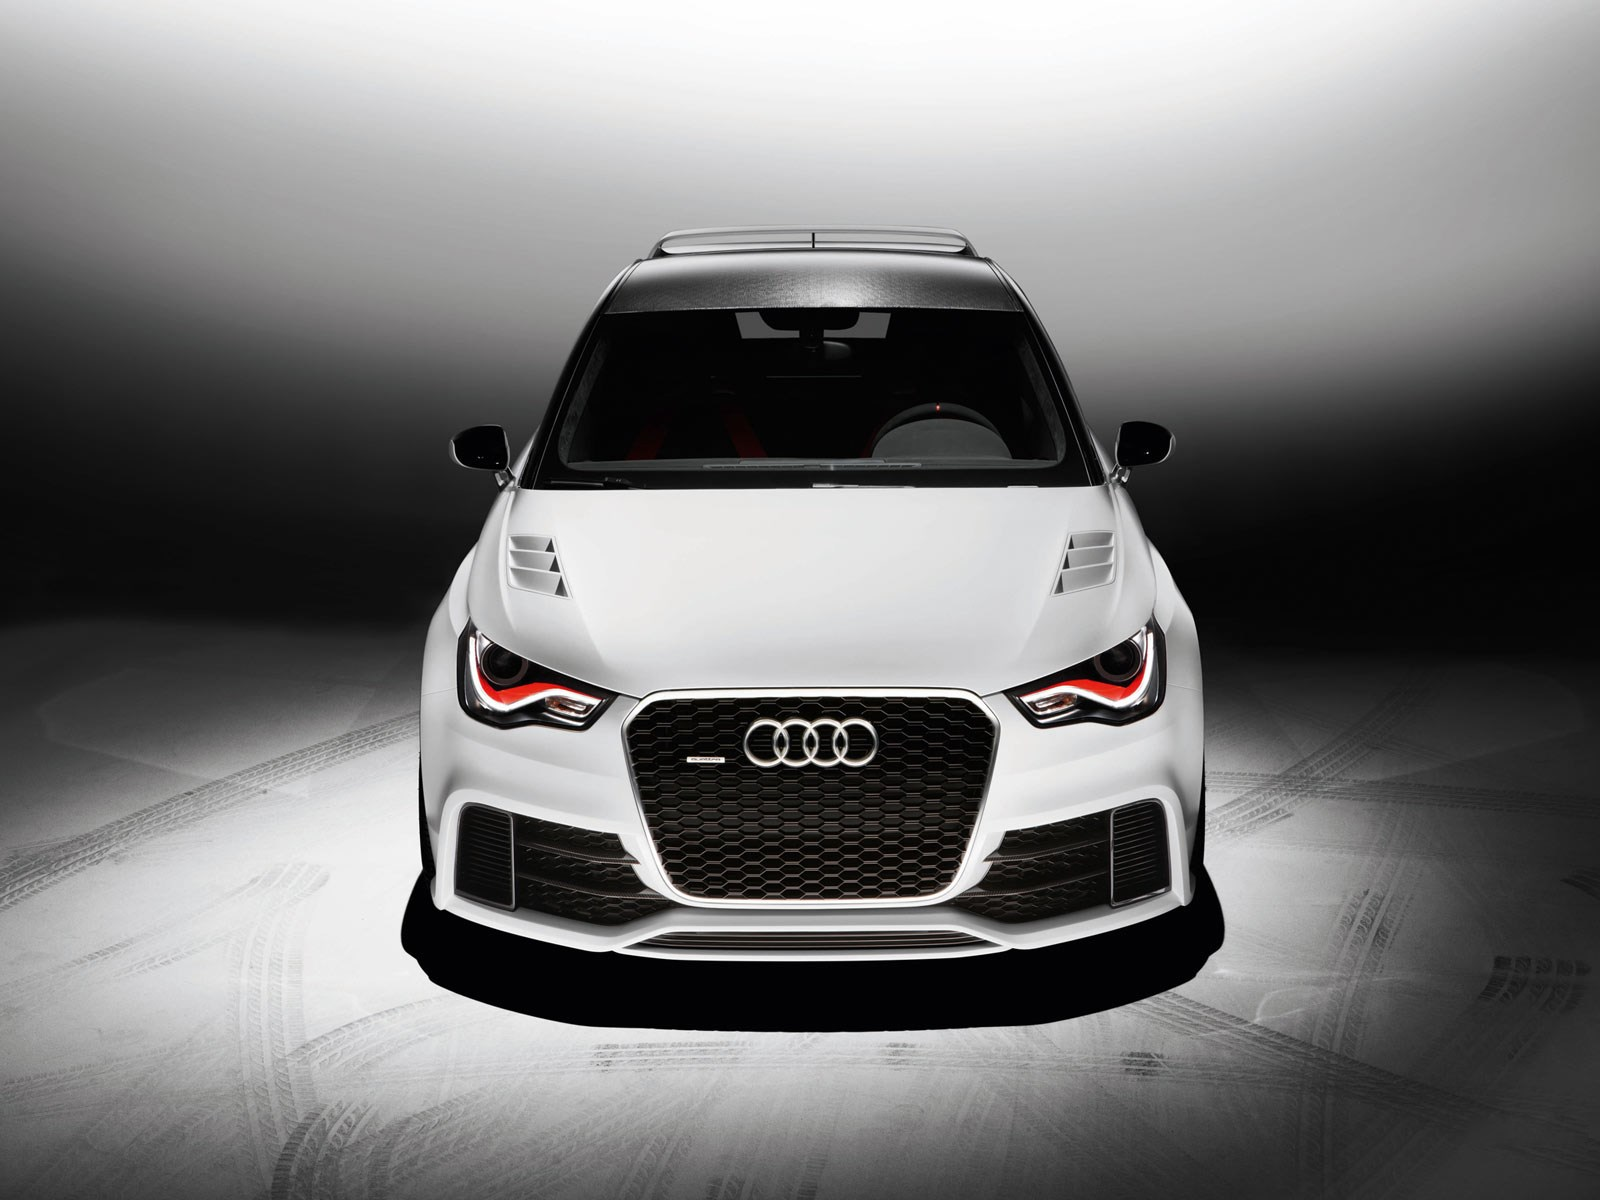 1600x1200 - Audi A1 Wallpapers 23